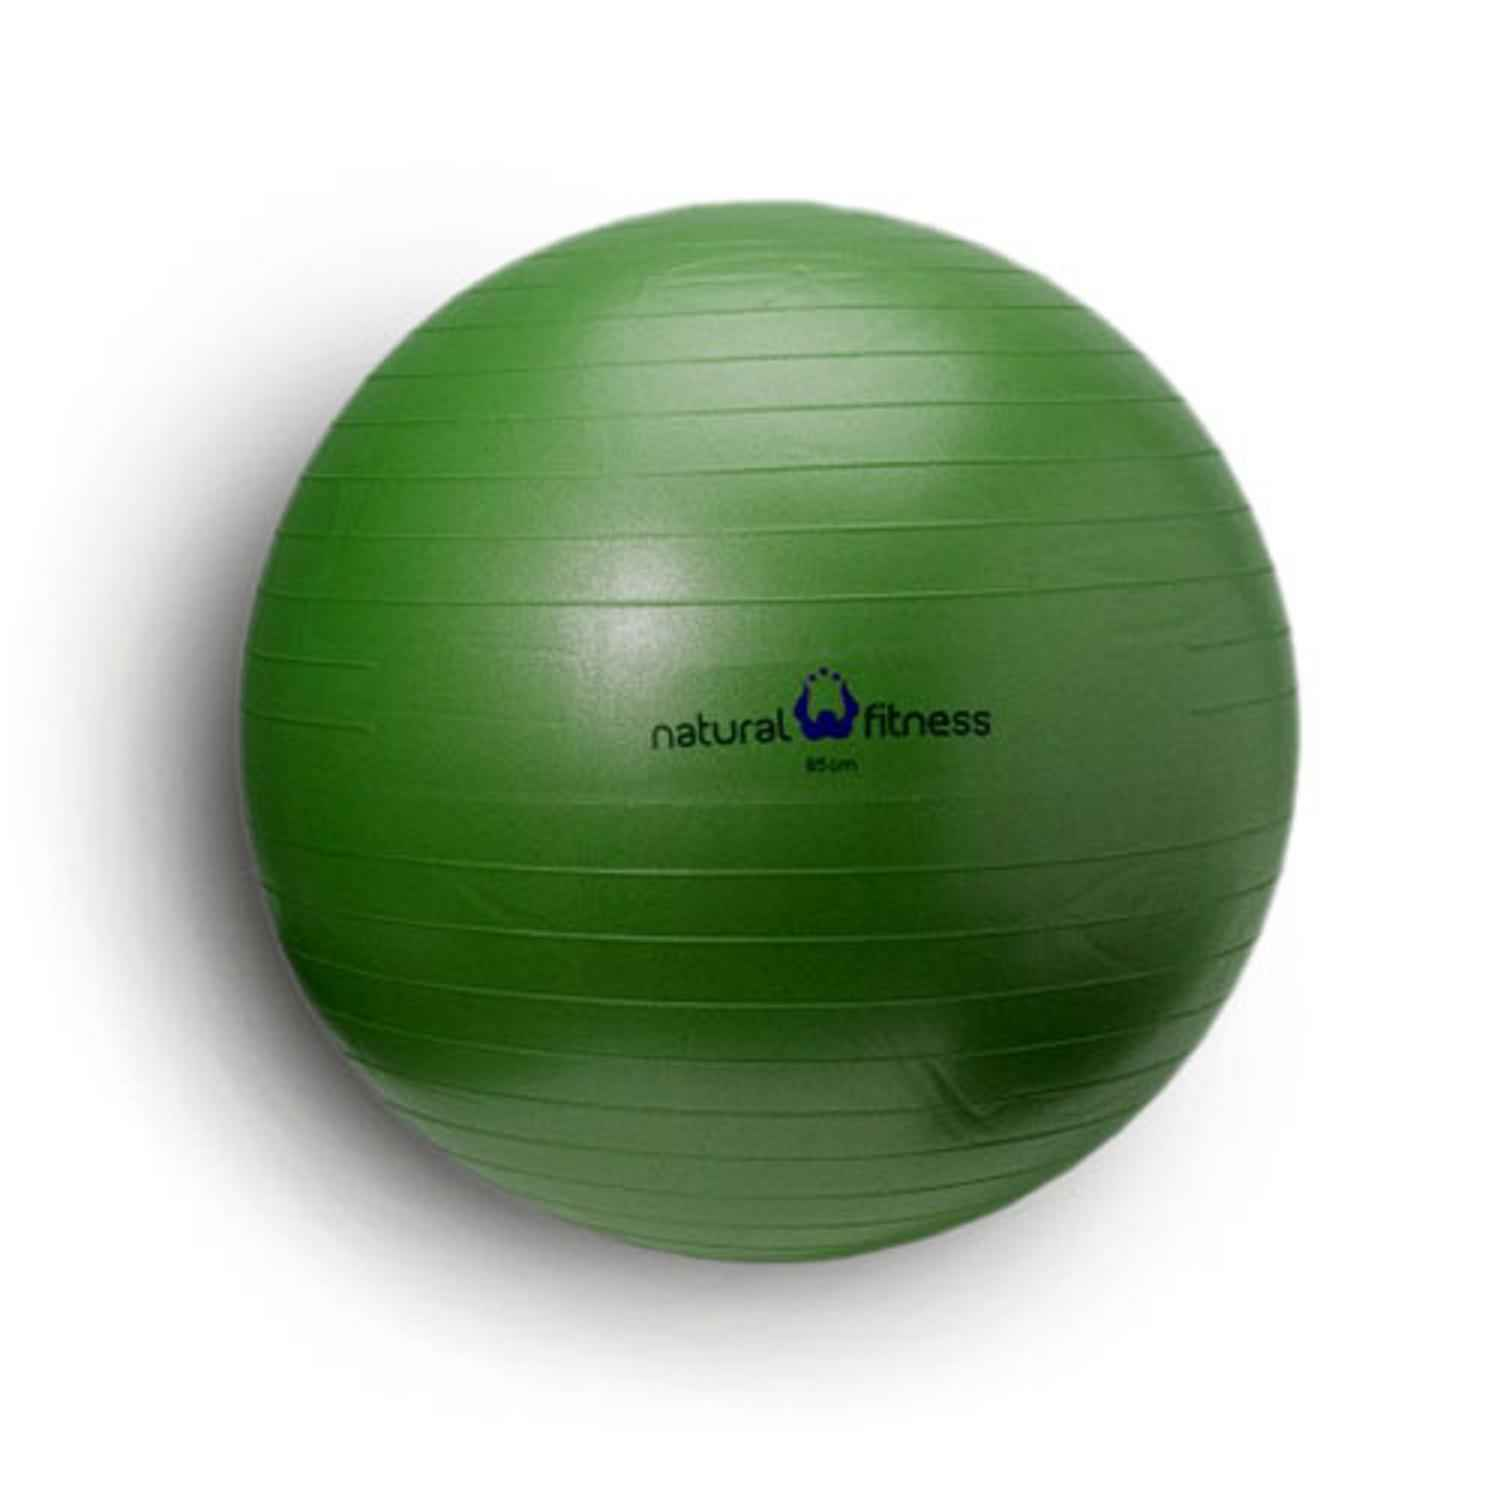 Swiss home office green ball chair